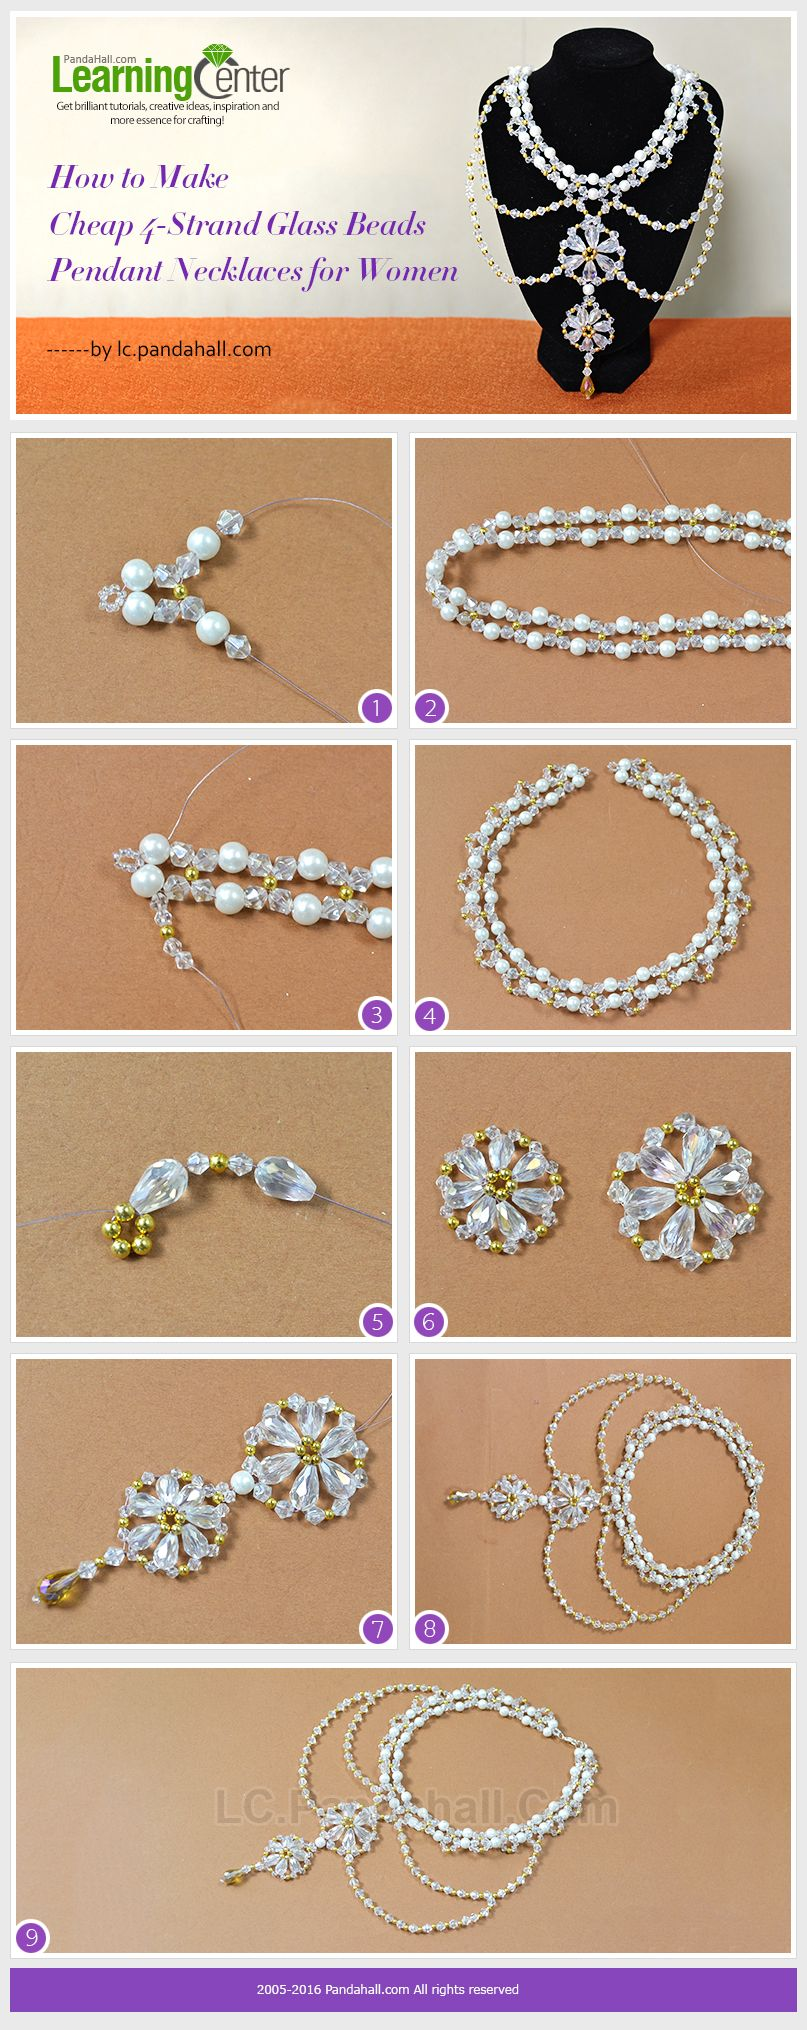 Tutorial On How To Make Cheap 4-Strand Glass Beads Pendant Necklaces For Women From Lcpandahall